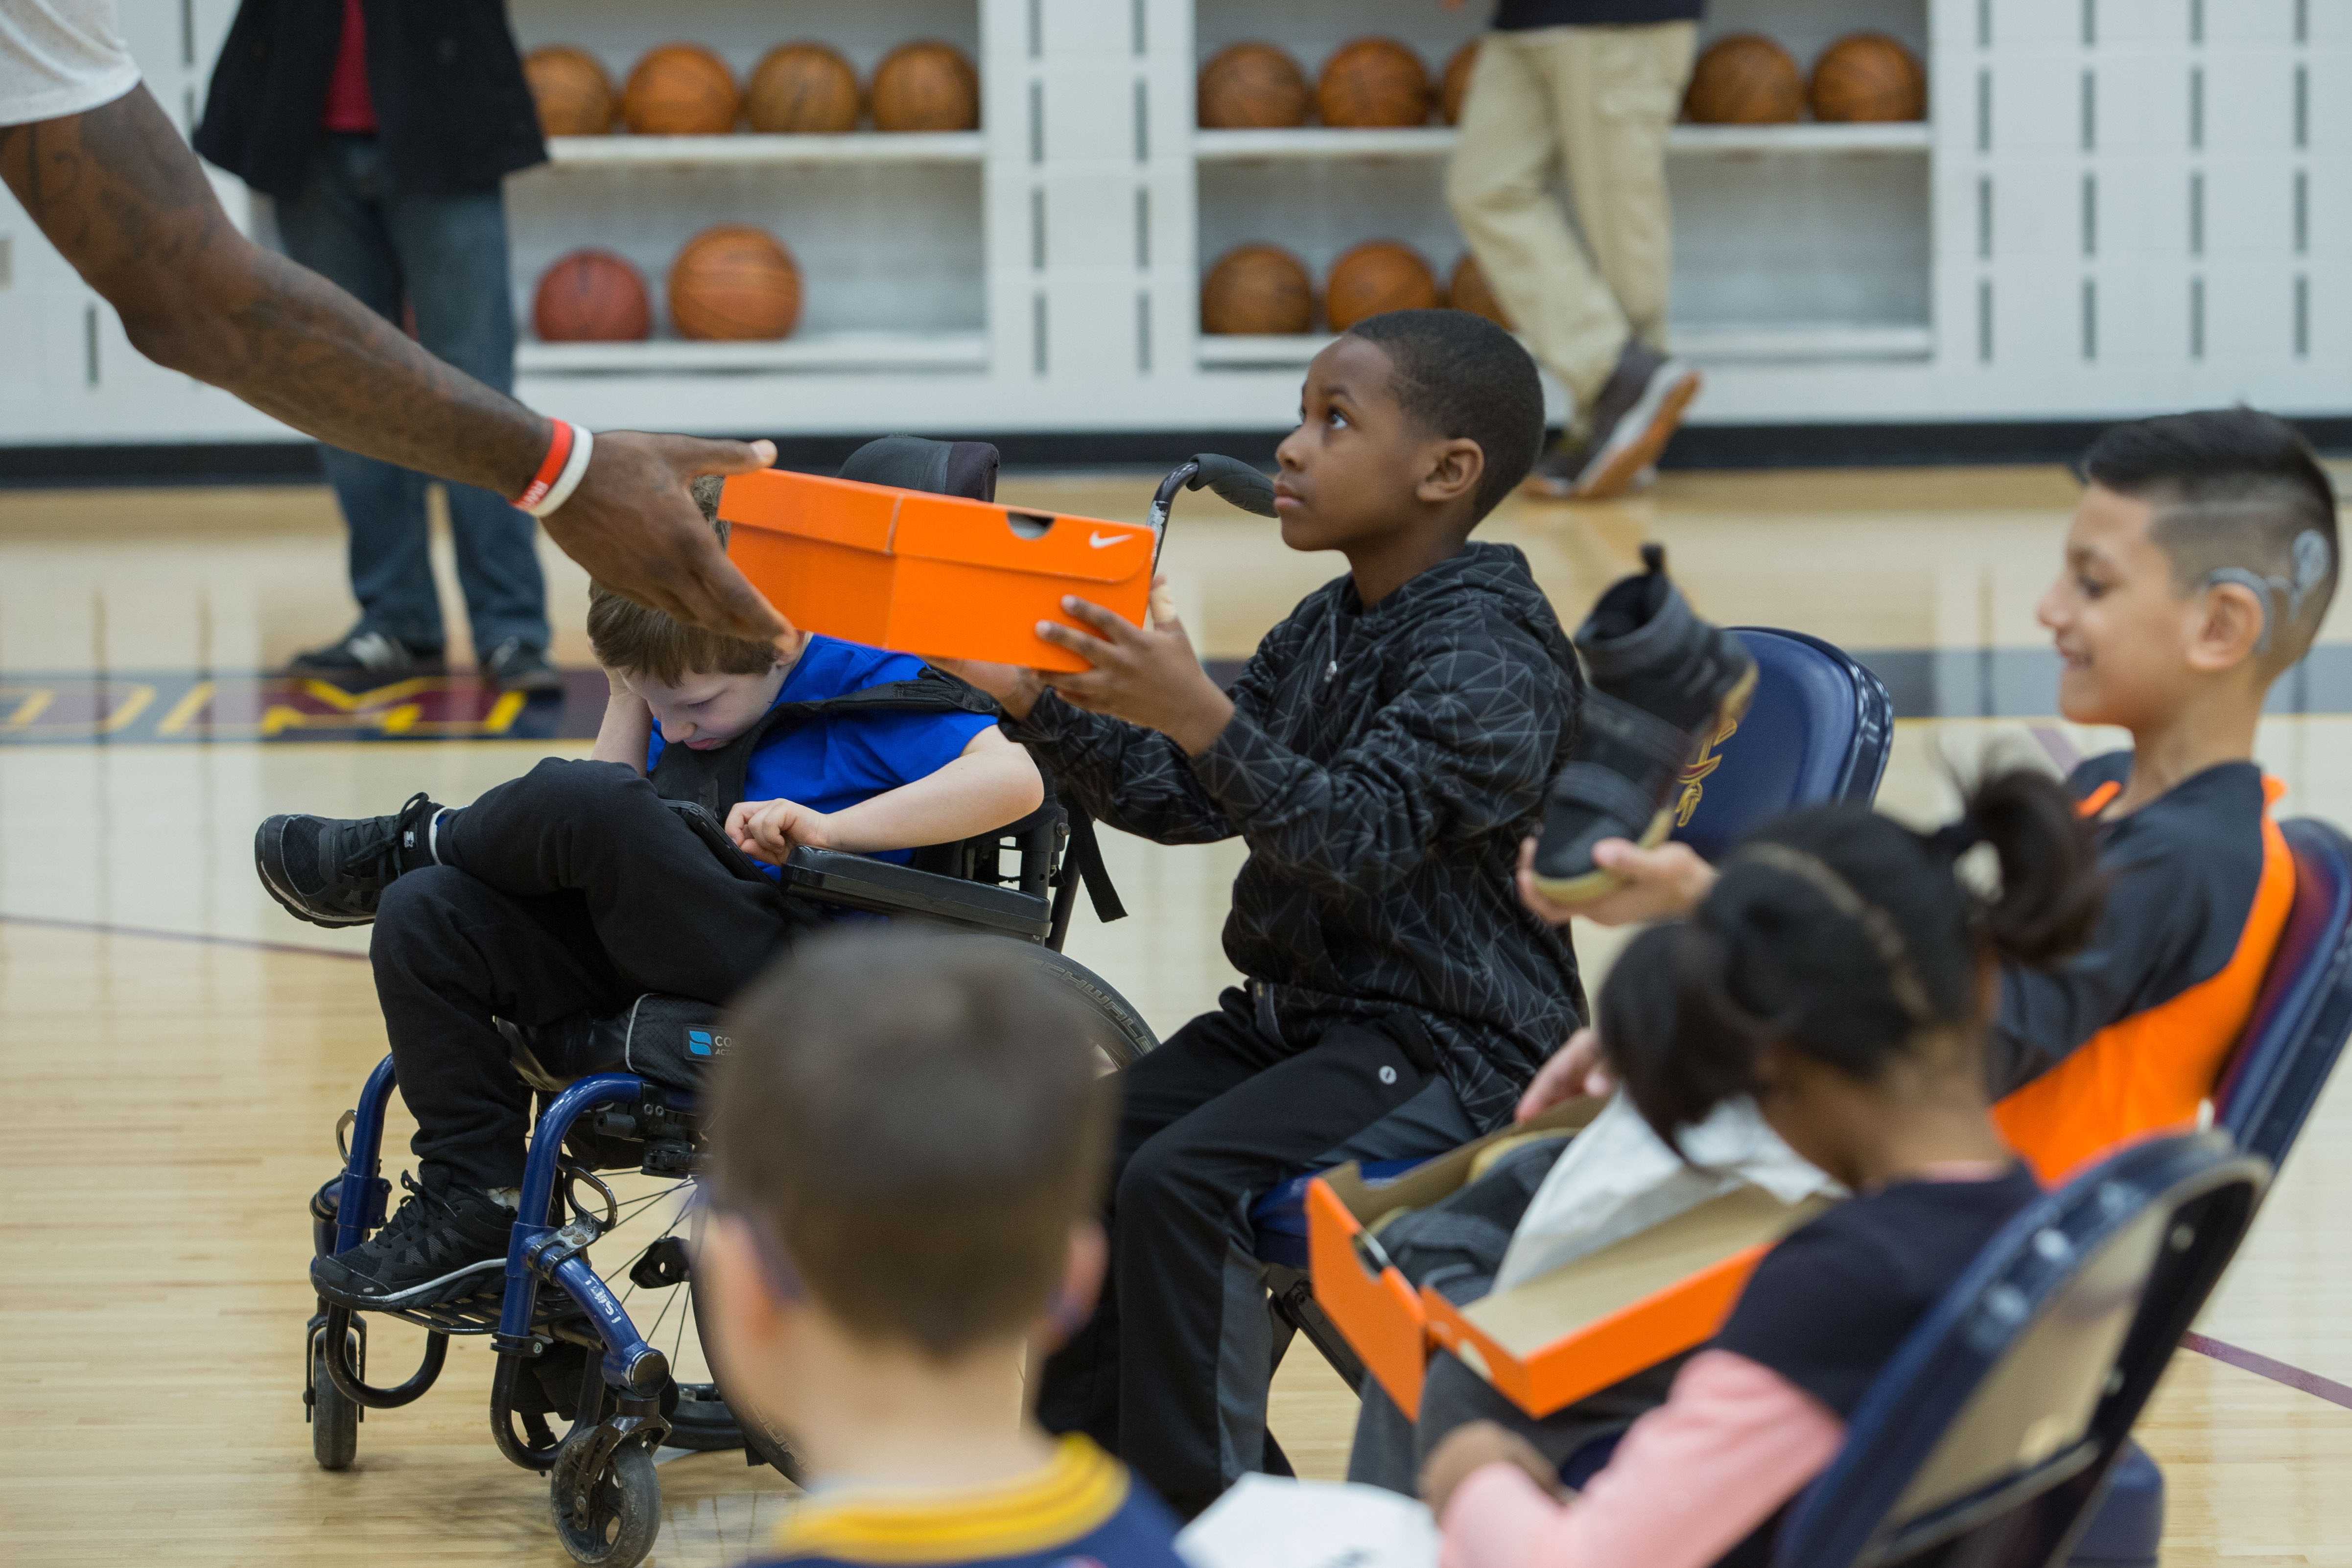 LeBron James gives Nike shoes to Cleveland Clinic kids